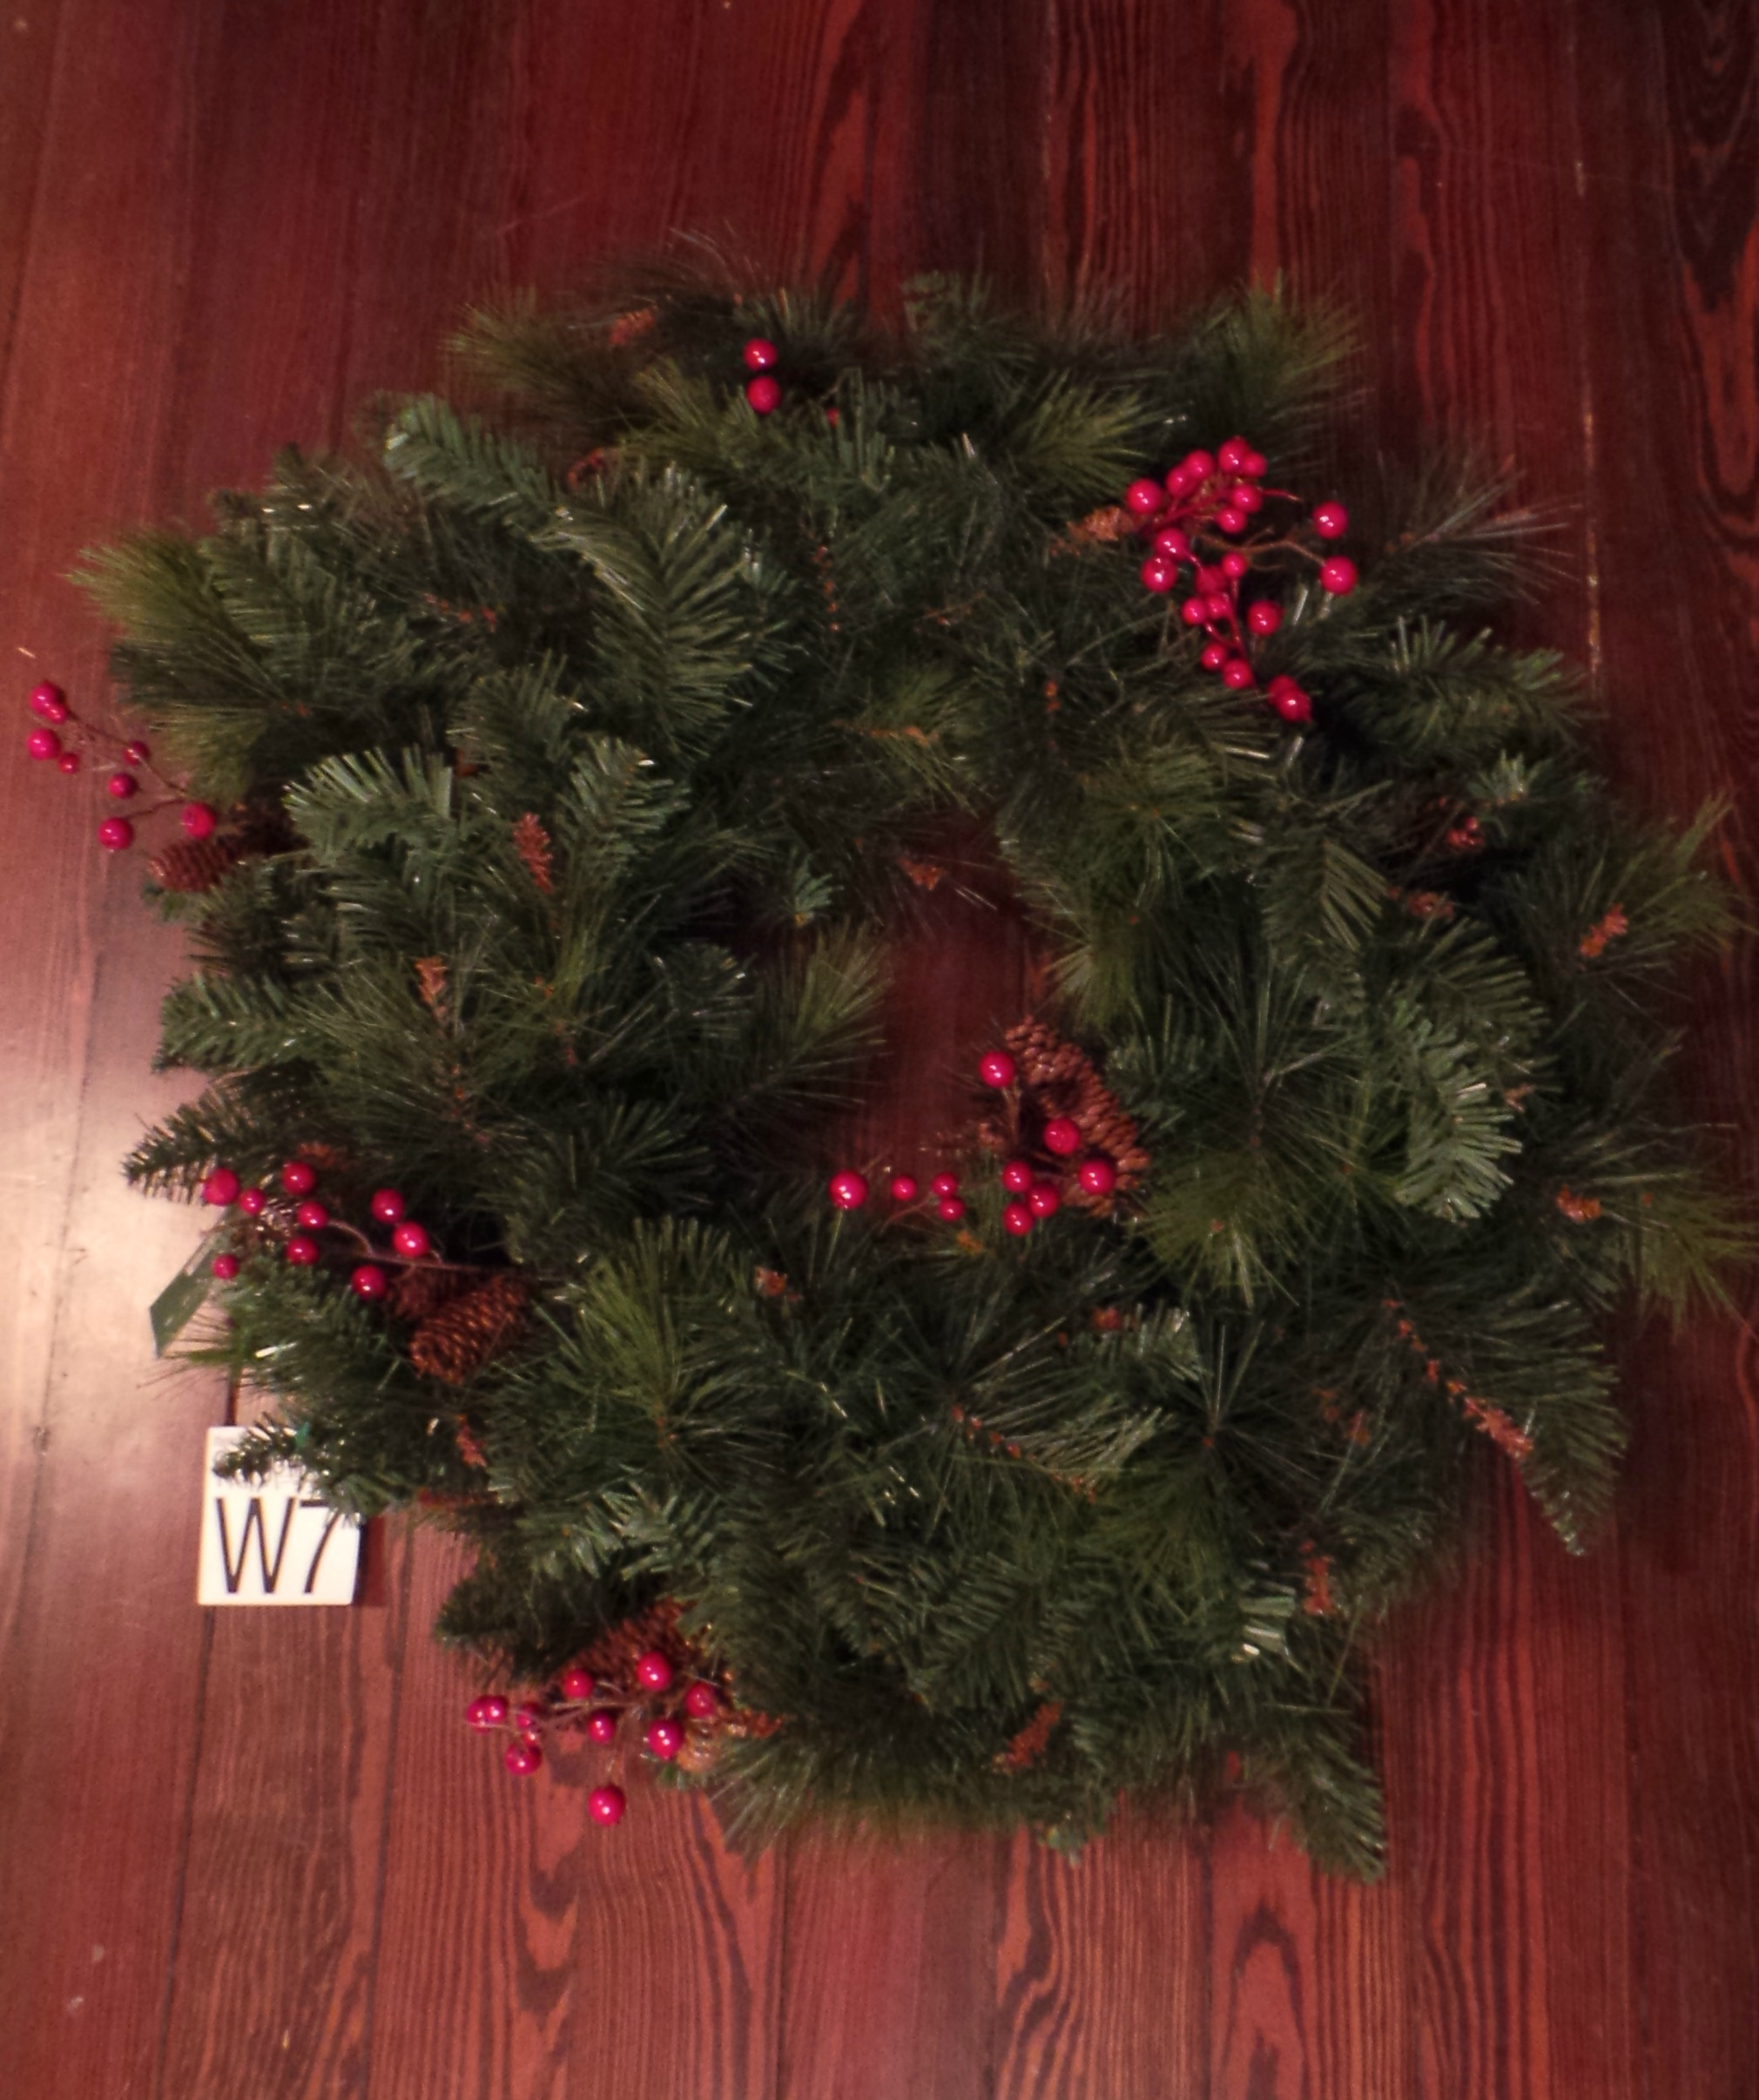 i started with a plain wreath i purchased on sale at hobby lobby i cut the red beads off of it but left the pine cones i also purchased a plain burlap - Hobby Lobby Christmas Wreaths